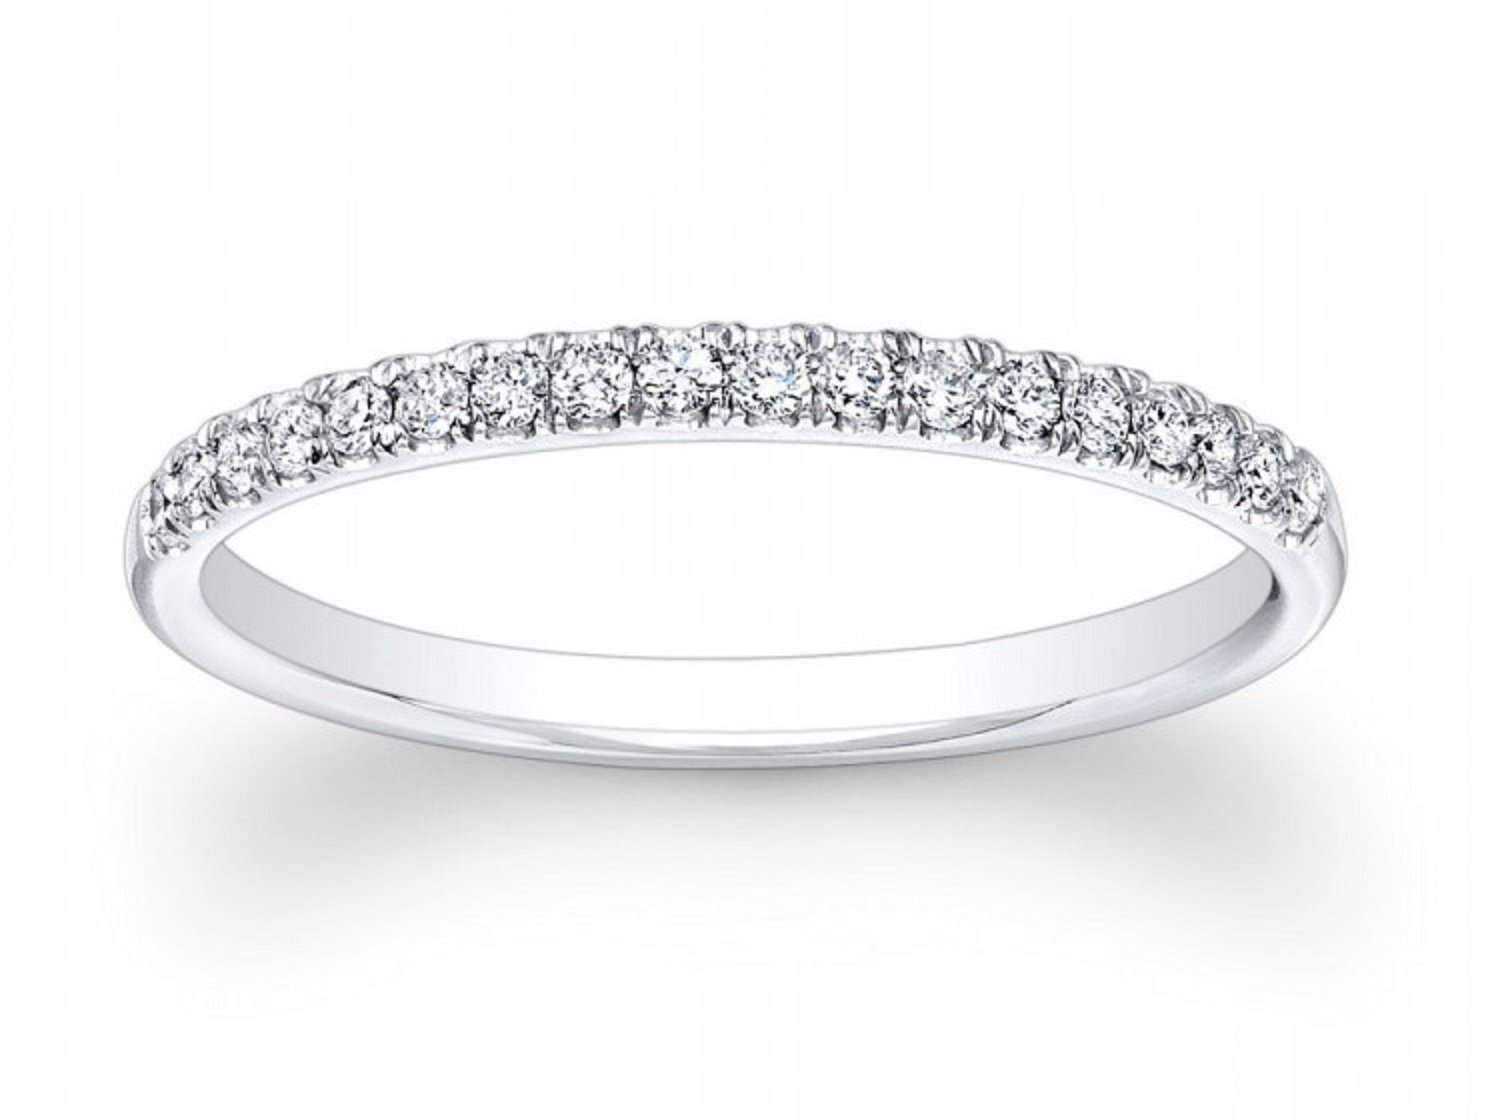 0.85 ct Brilliant Round Cut Wedding Promise Bridal Engagement Band In Solid 14K White Gold , Size 7